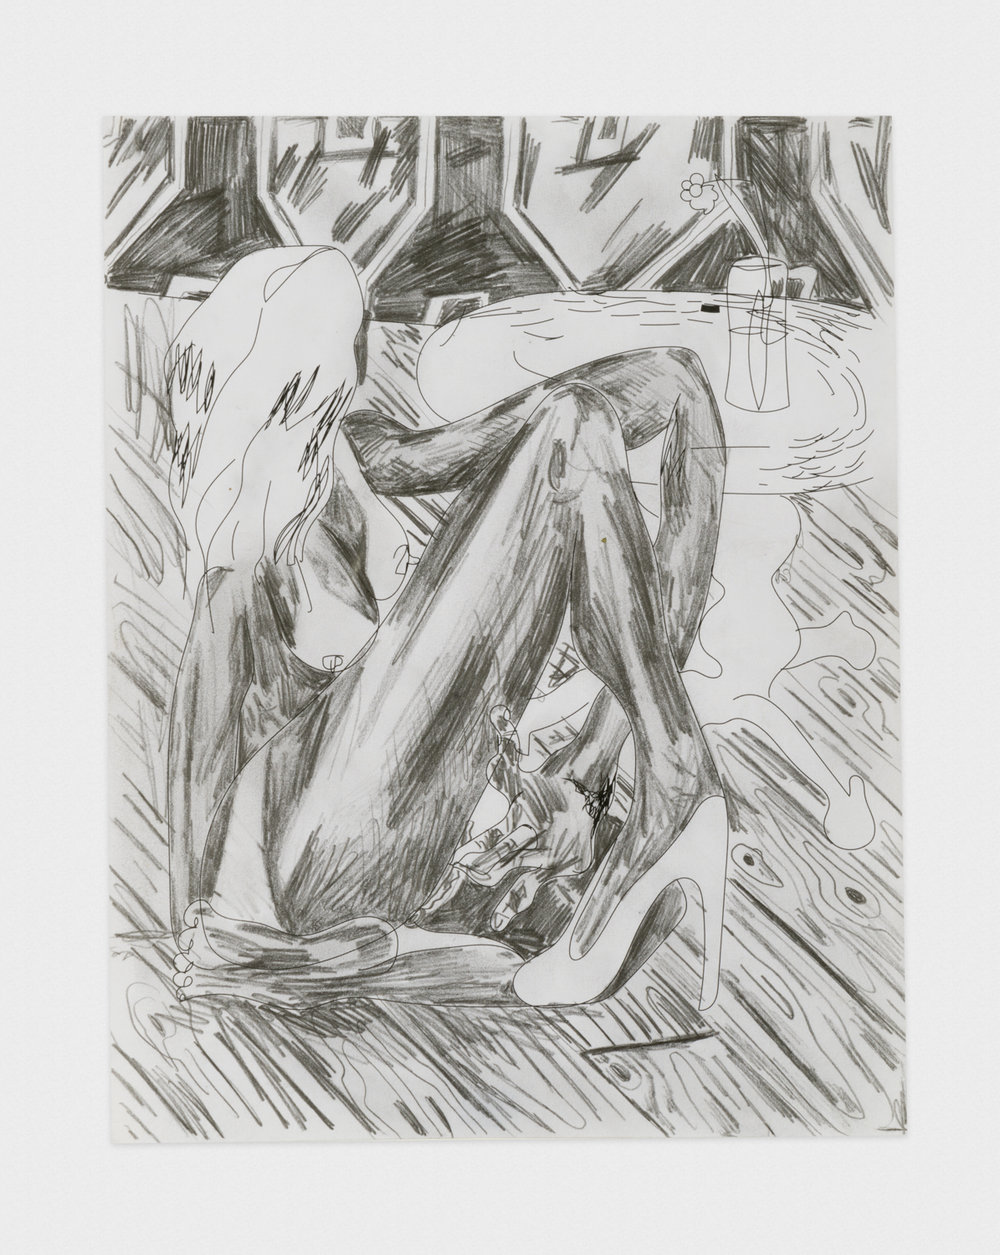 Alex Becerra Woman and Wood 2016 Graphite on paper 11 x 8 1/2 in (27.94h x 21.59w cm) AB435